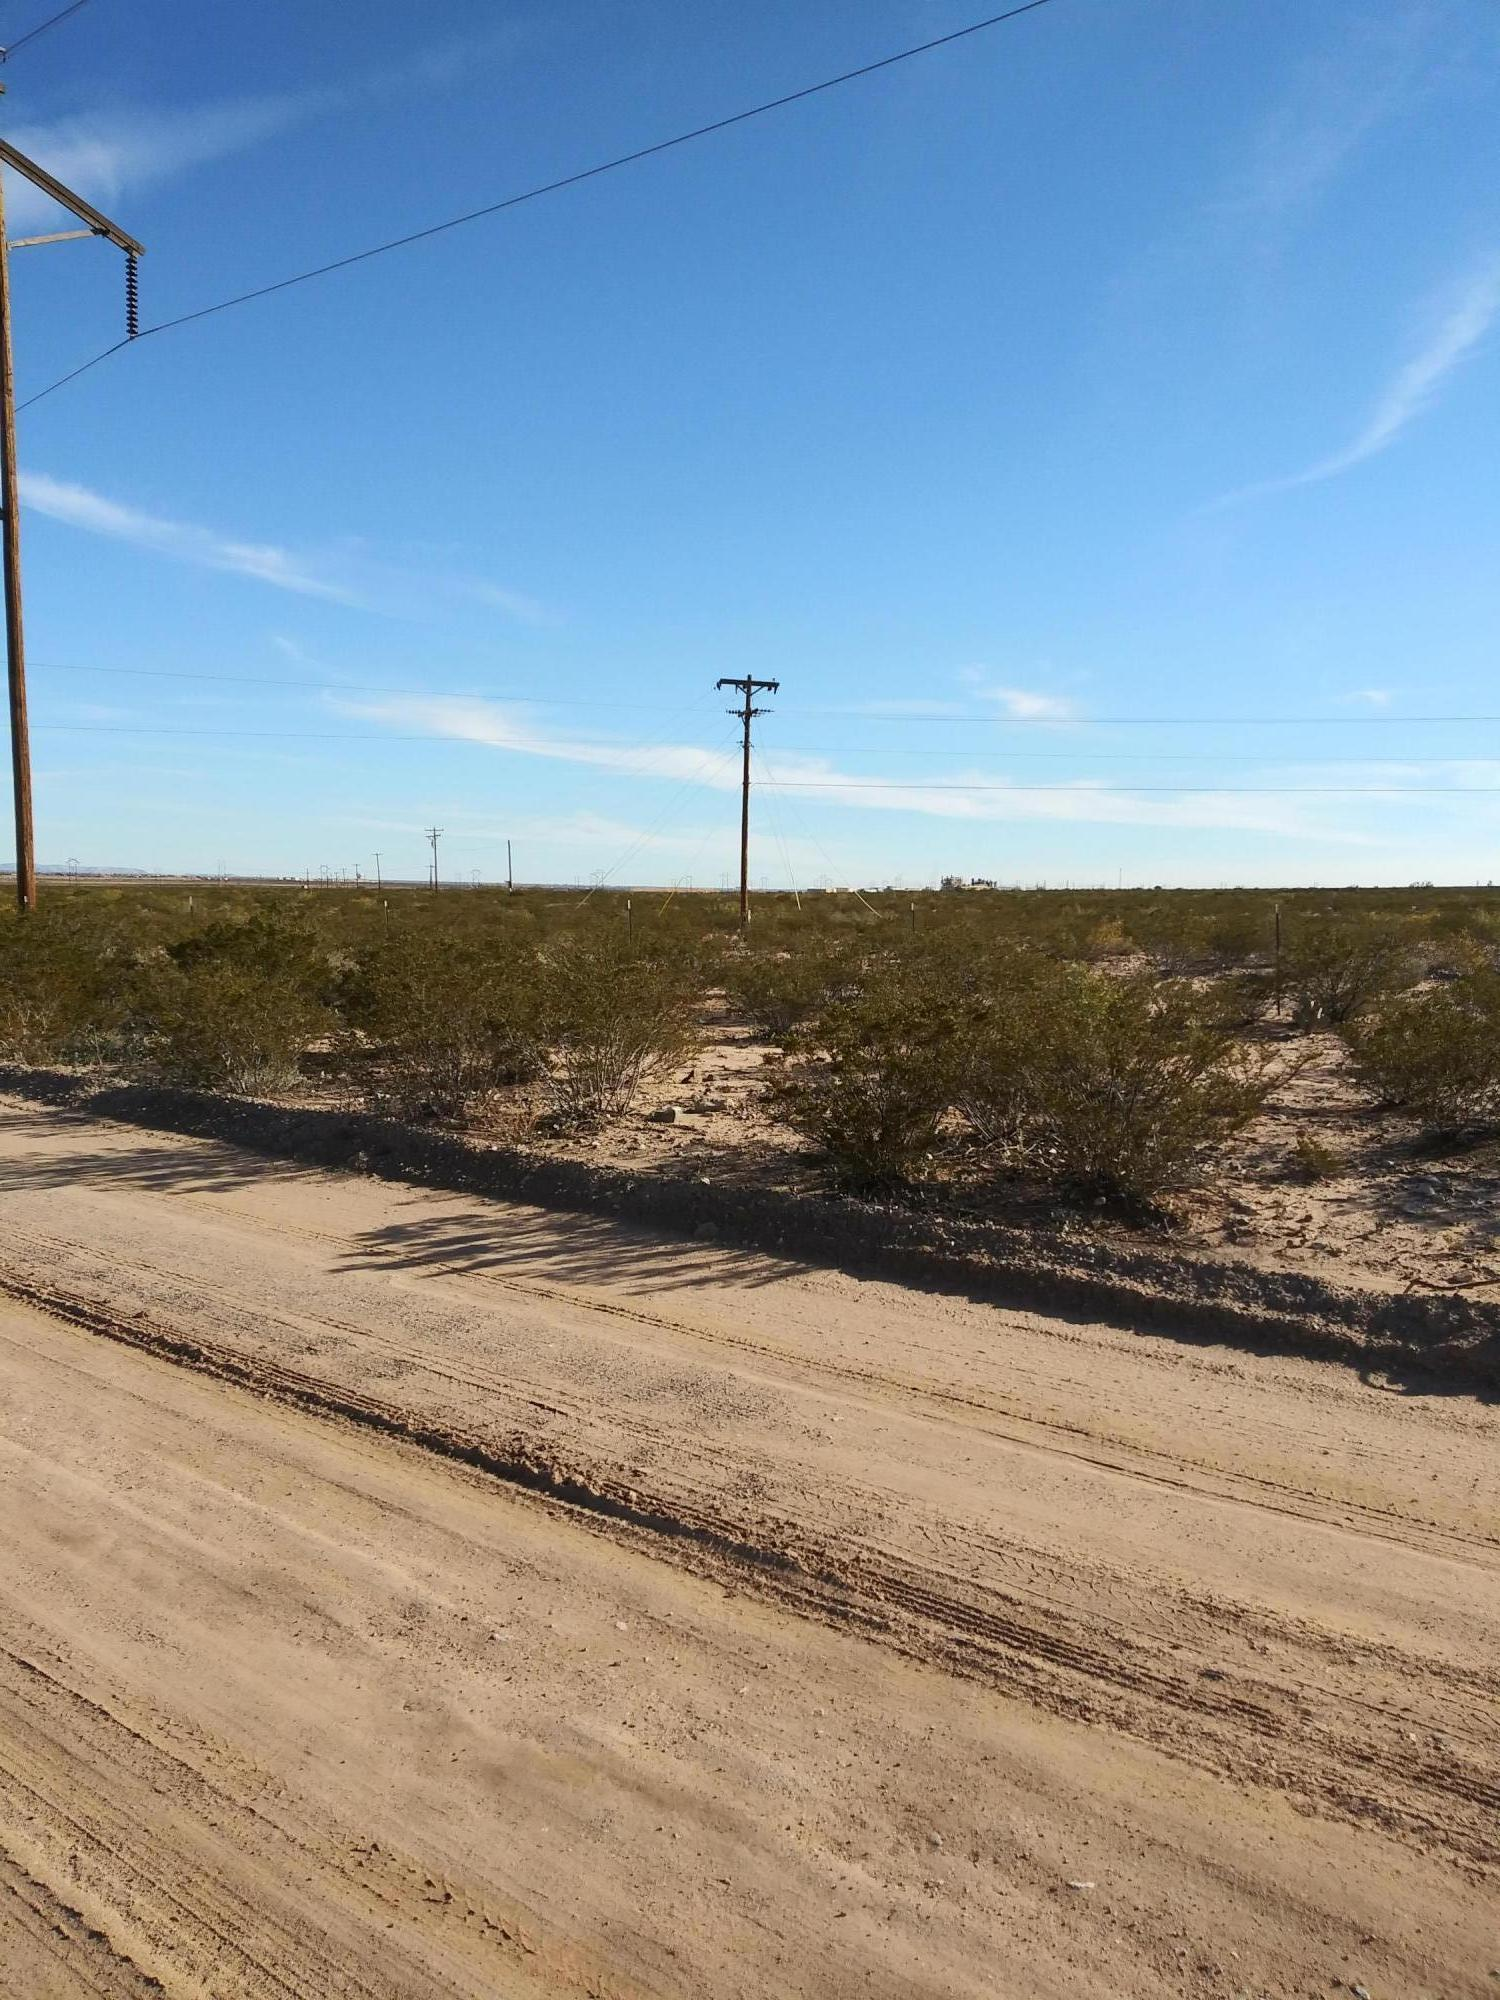 000 COUNTY ROAD A-074 Road, Chaparral, New Mexico 88081, ,Land,For sale,COUNTY ROAD A-074,819652